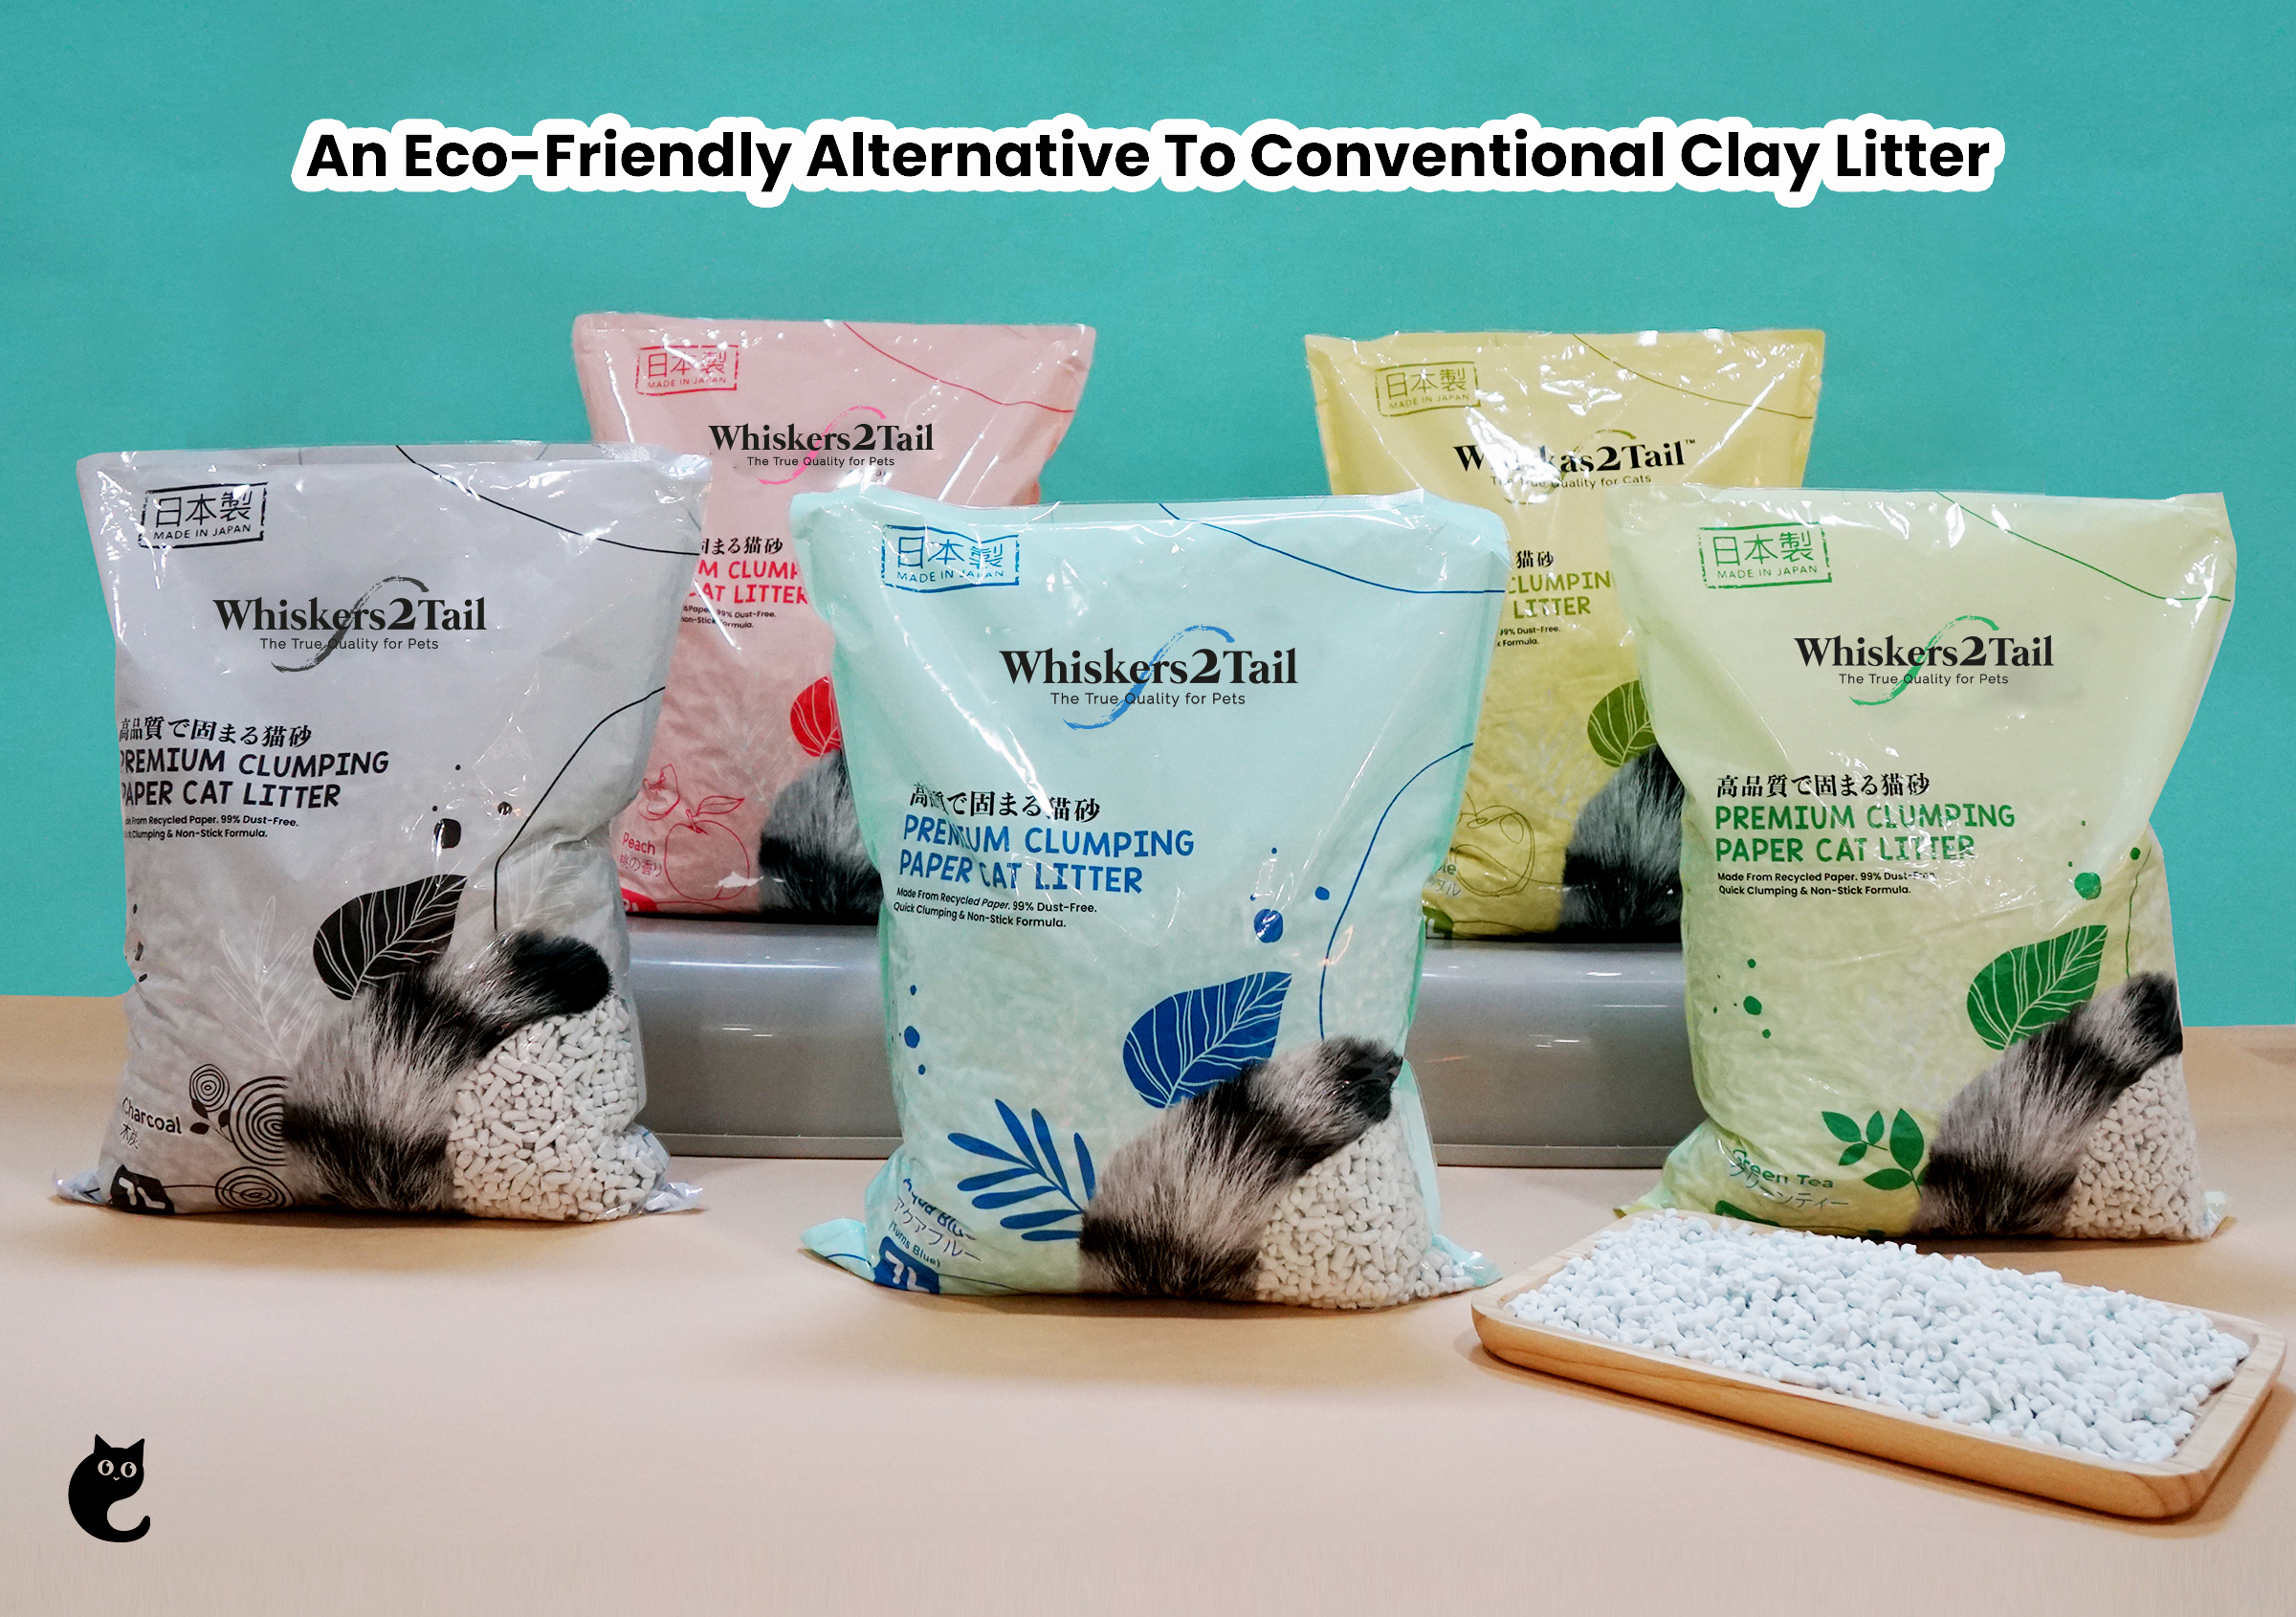 An Eco-Friendly Alternative To Conventional Clay Litter